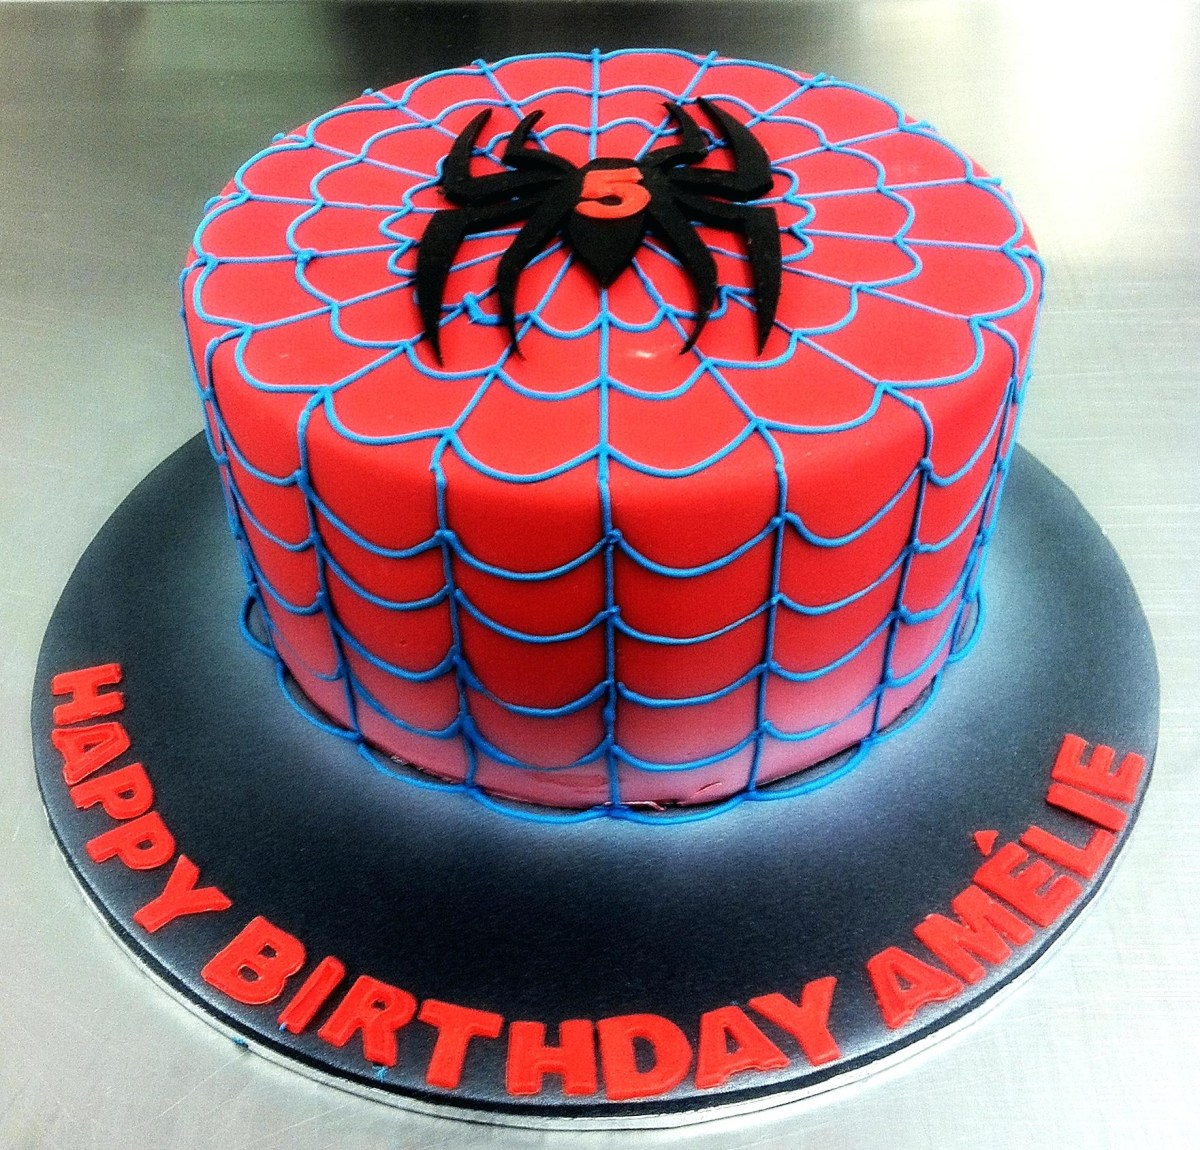 Spiderman Birthday Cakes Spiderman Birthday Cakes Ideas 2happy Homeinteriorpl